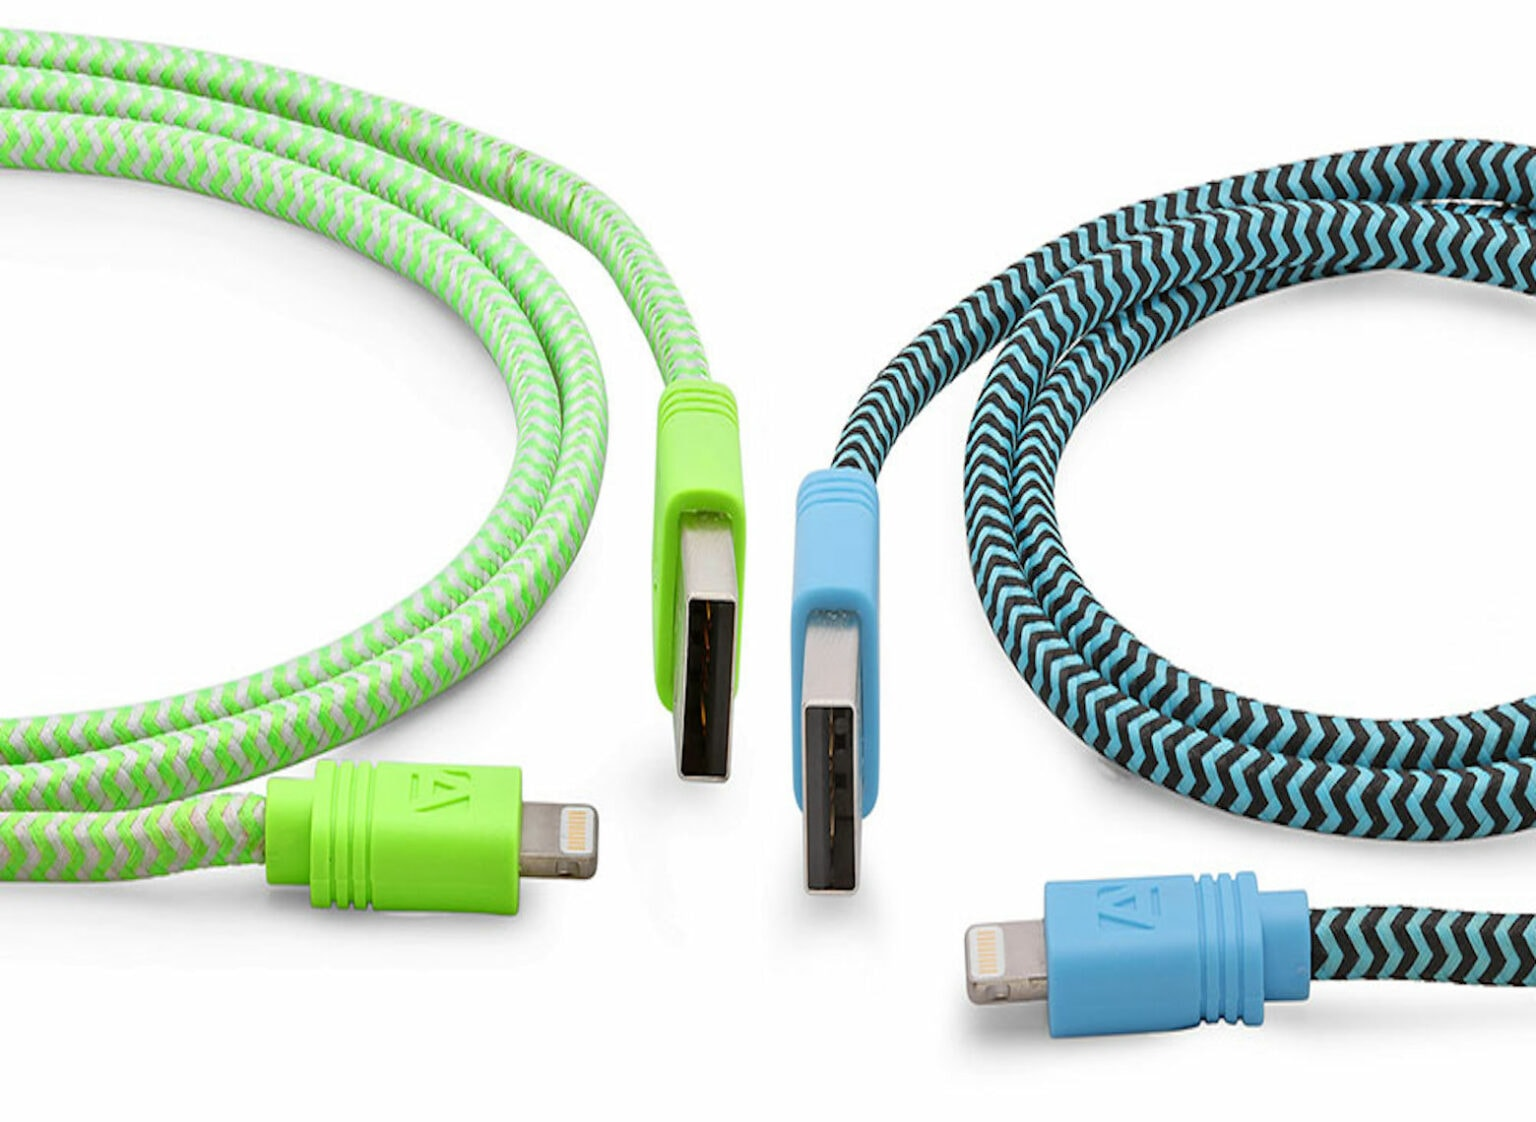 10-Ft Cloth MFi-Certified Lightning Cable is super-strong.